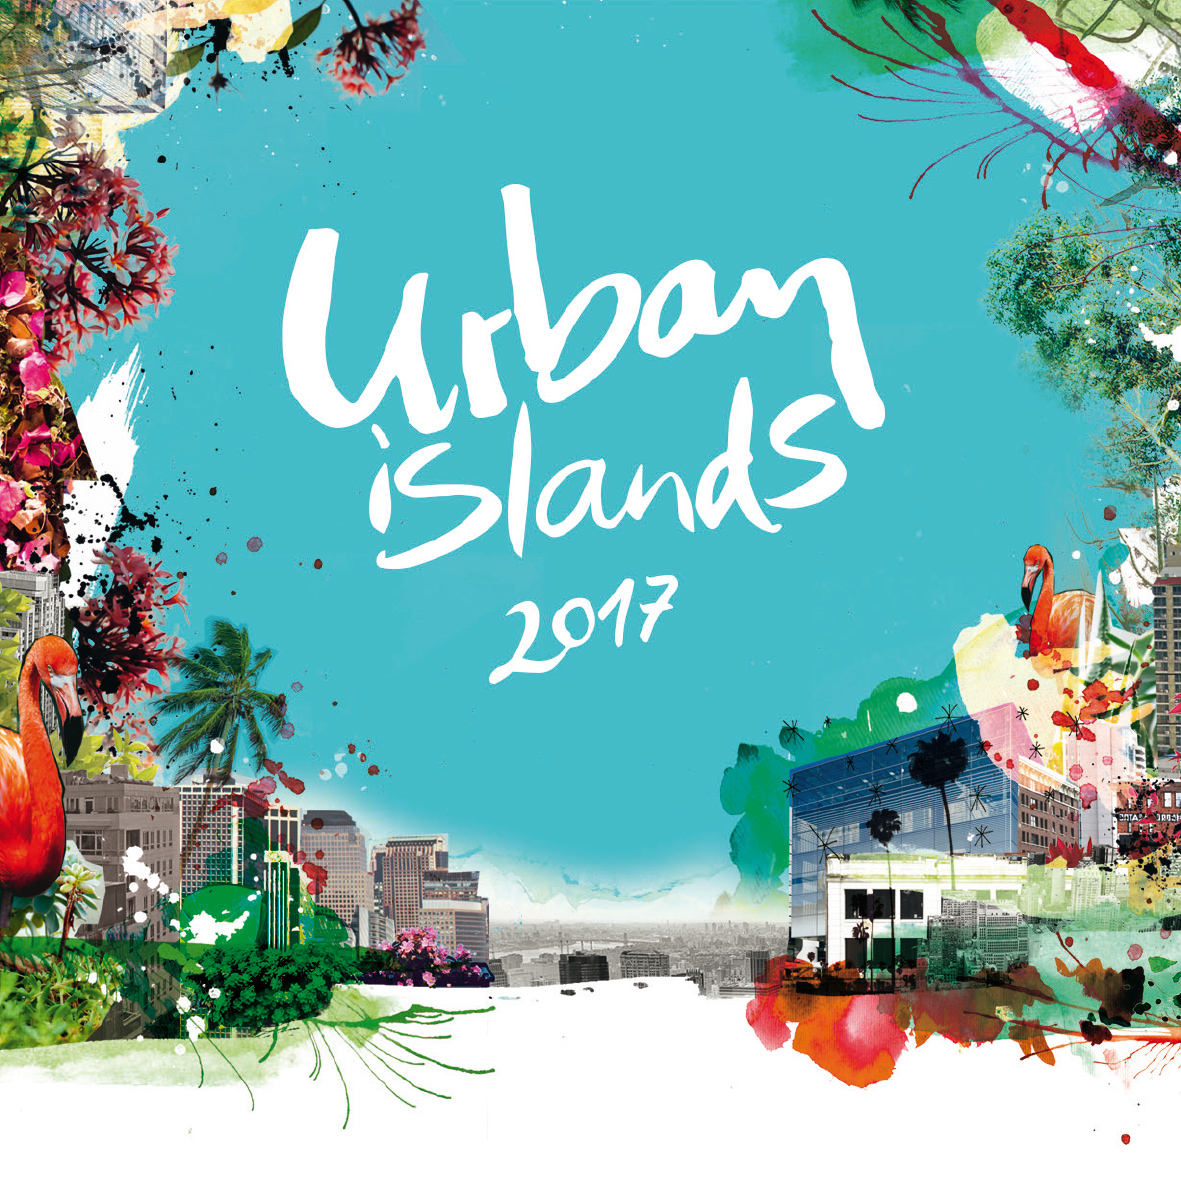 urban_islands_2017_anzeige_din_lang_98x210mm_100x212mm_front